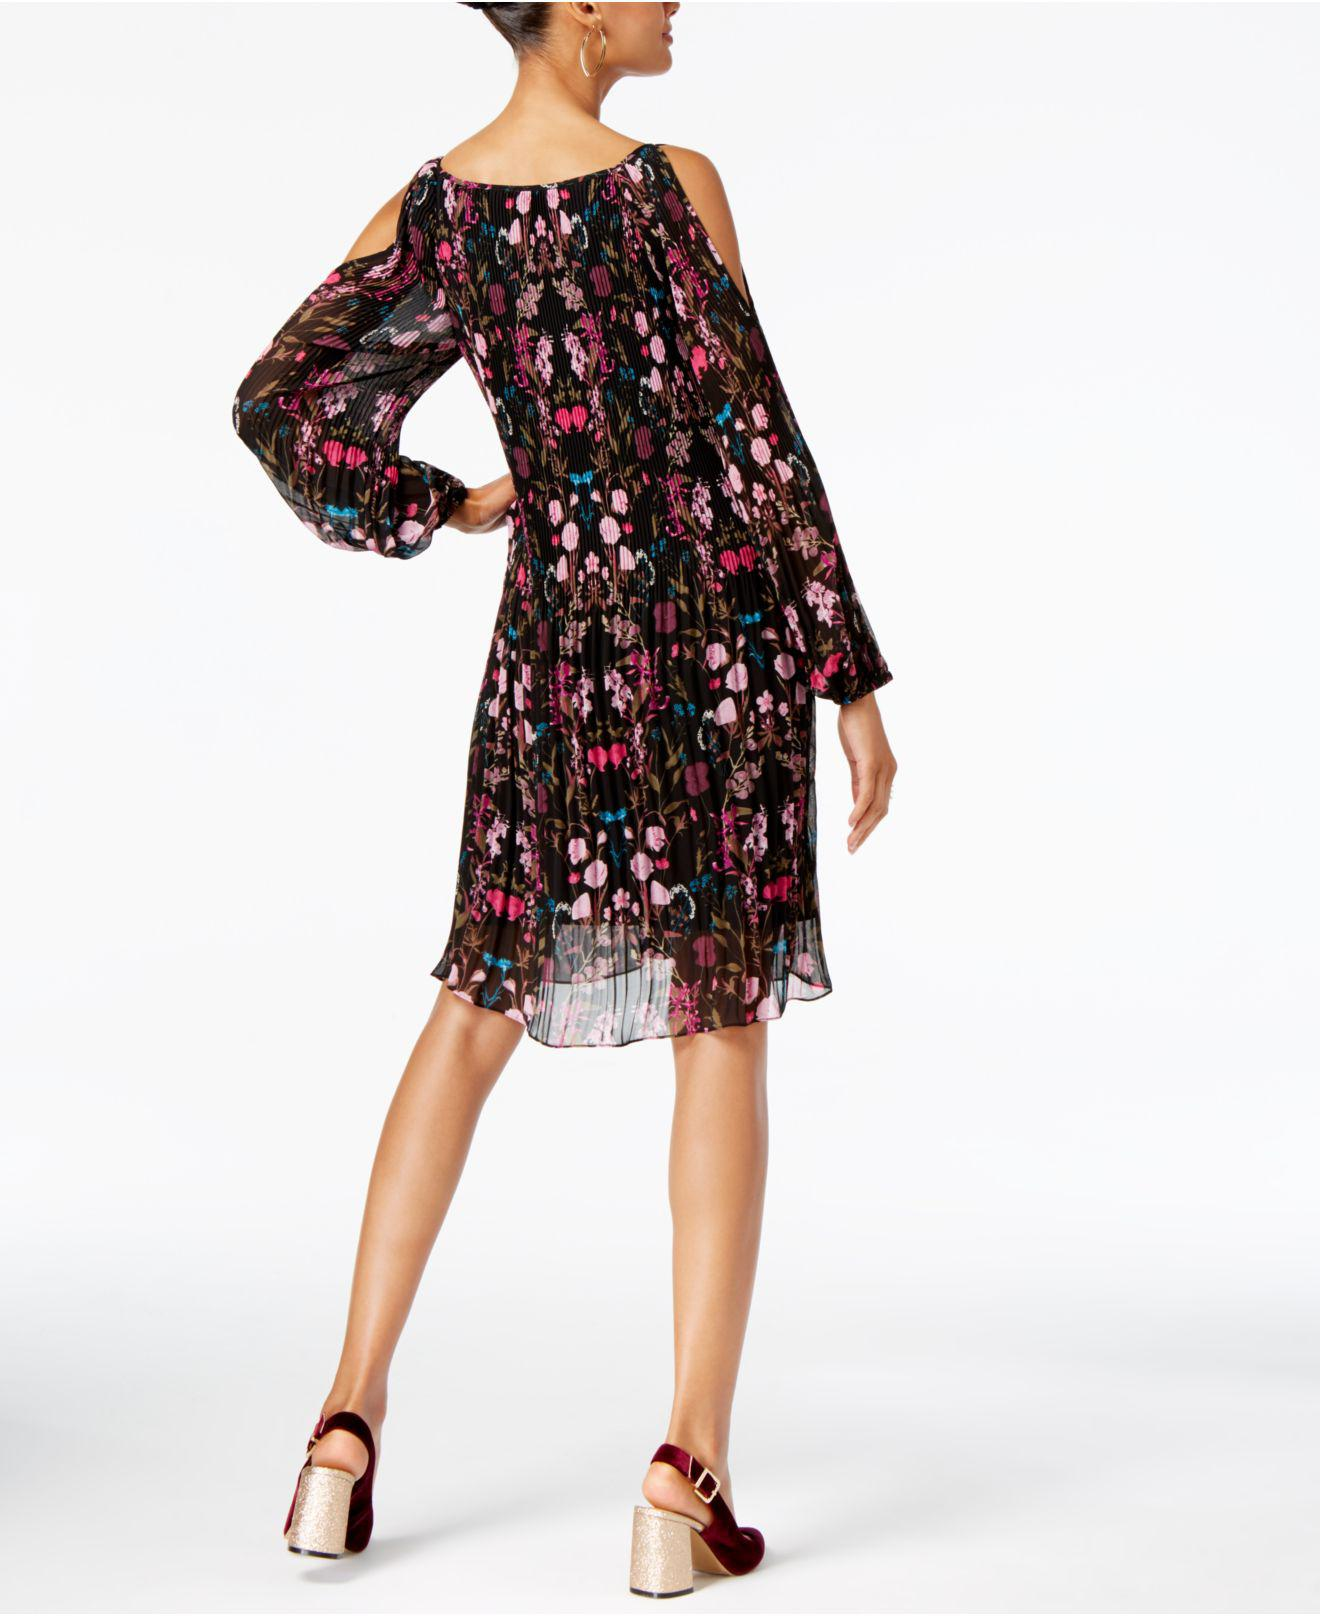 Macy's - FREE Shipping at bestgfilegj.gq Macy's has the latest fashion brands on Women's and Men's Clothing, Accessories, Jewelry, Beauty, Shoes and Home Products.